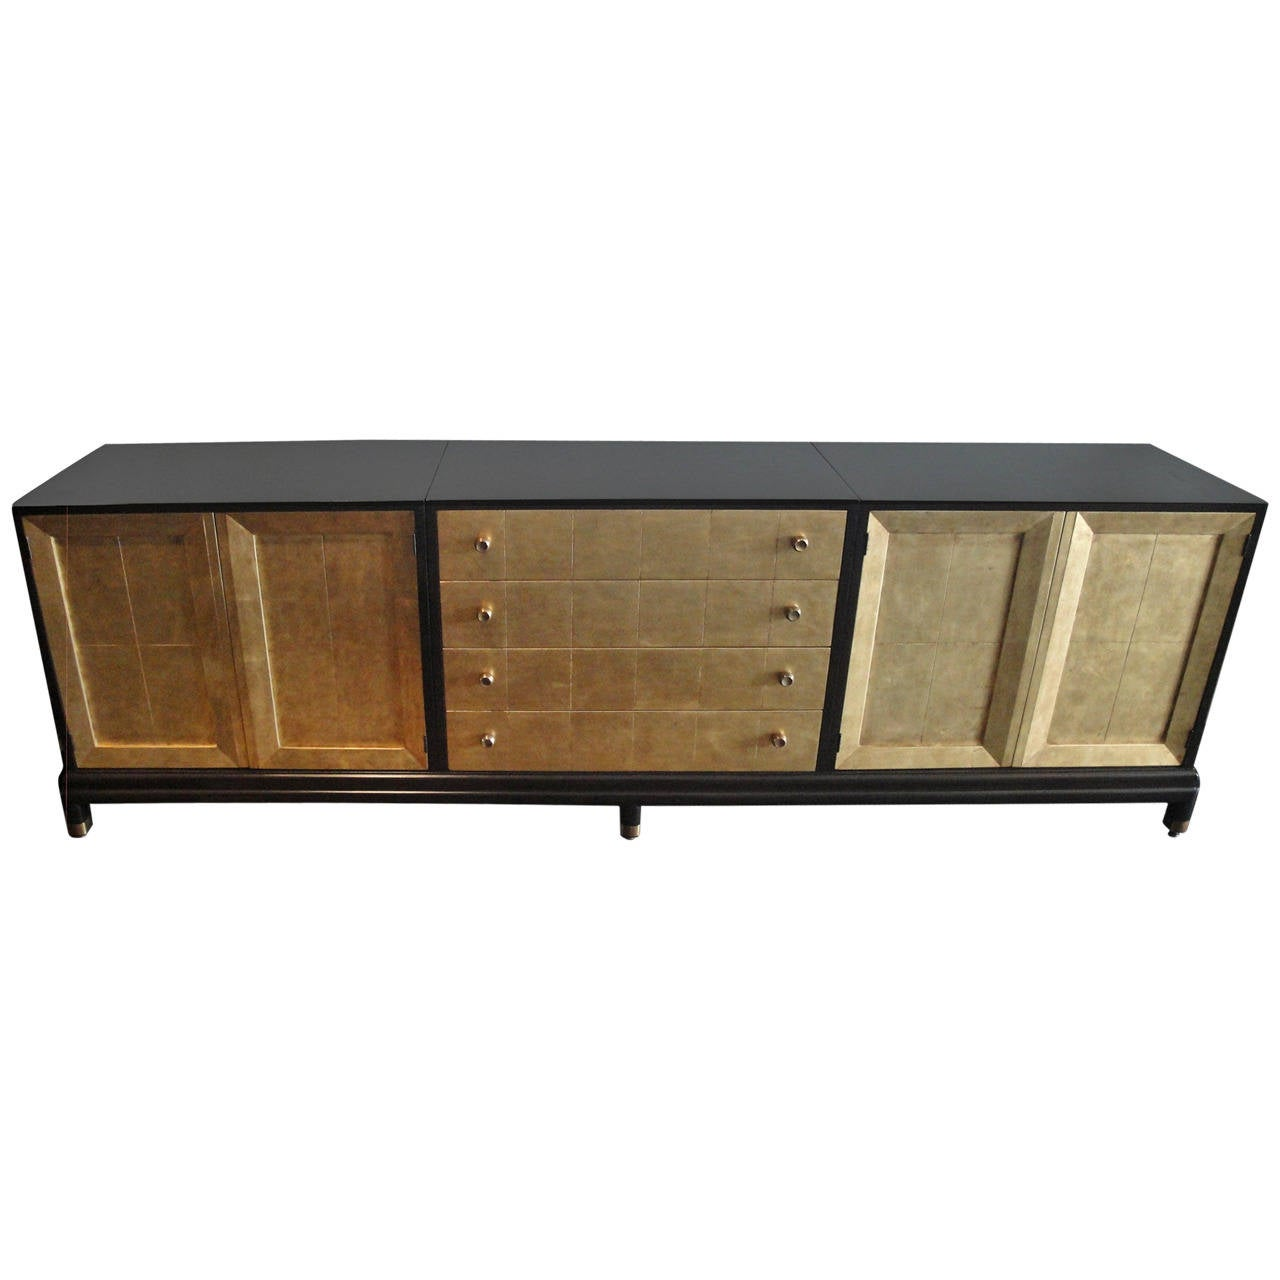 Renzo rutili gold leafed and ebonized sideboard for for Sideboard gold